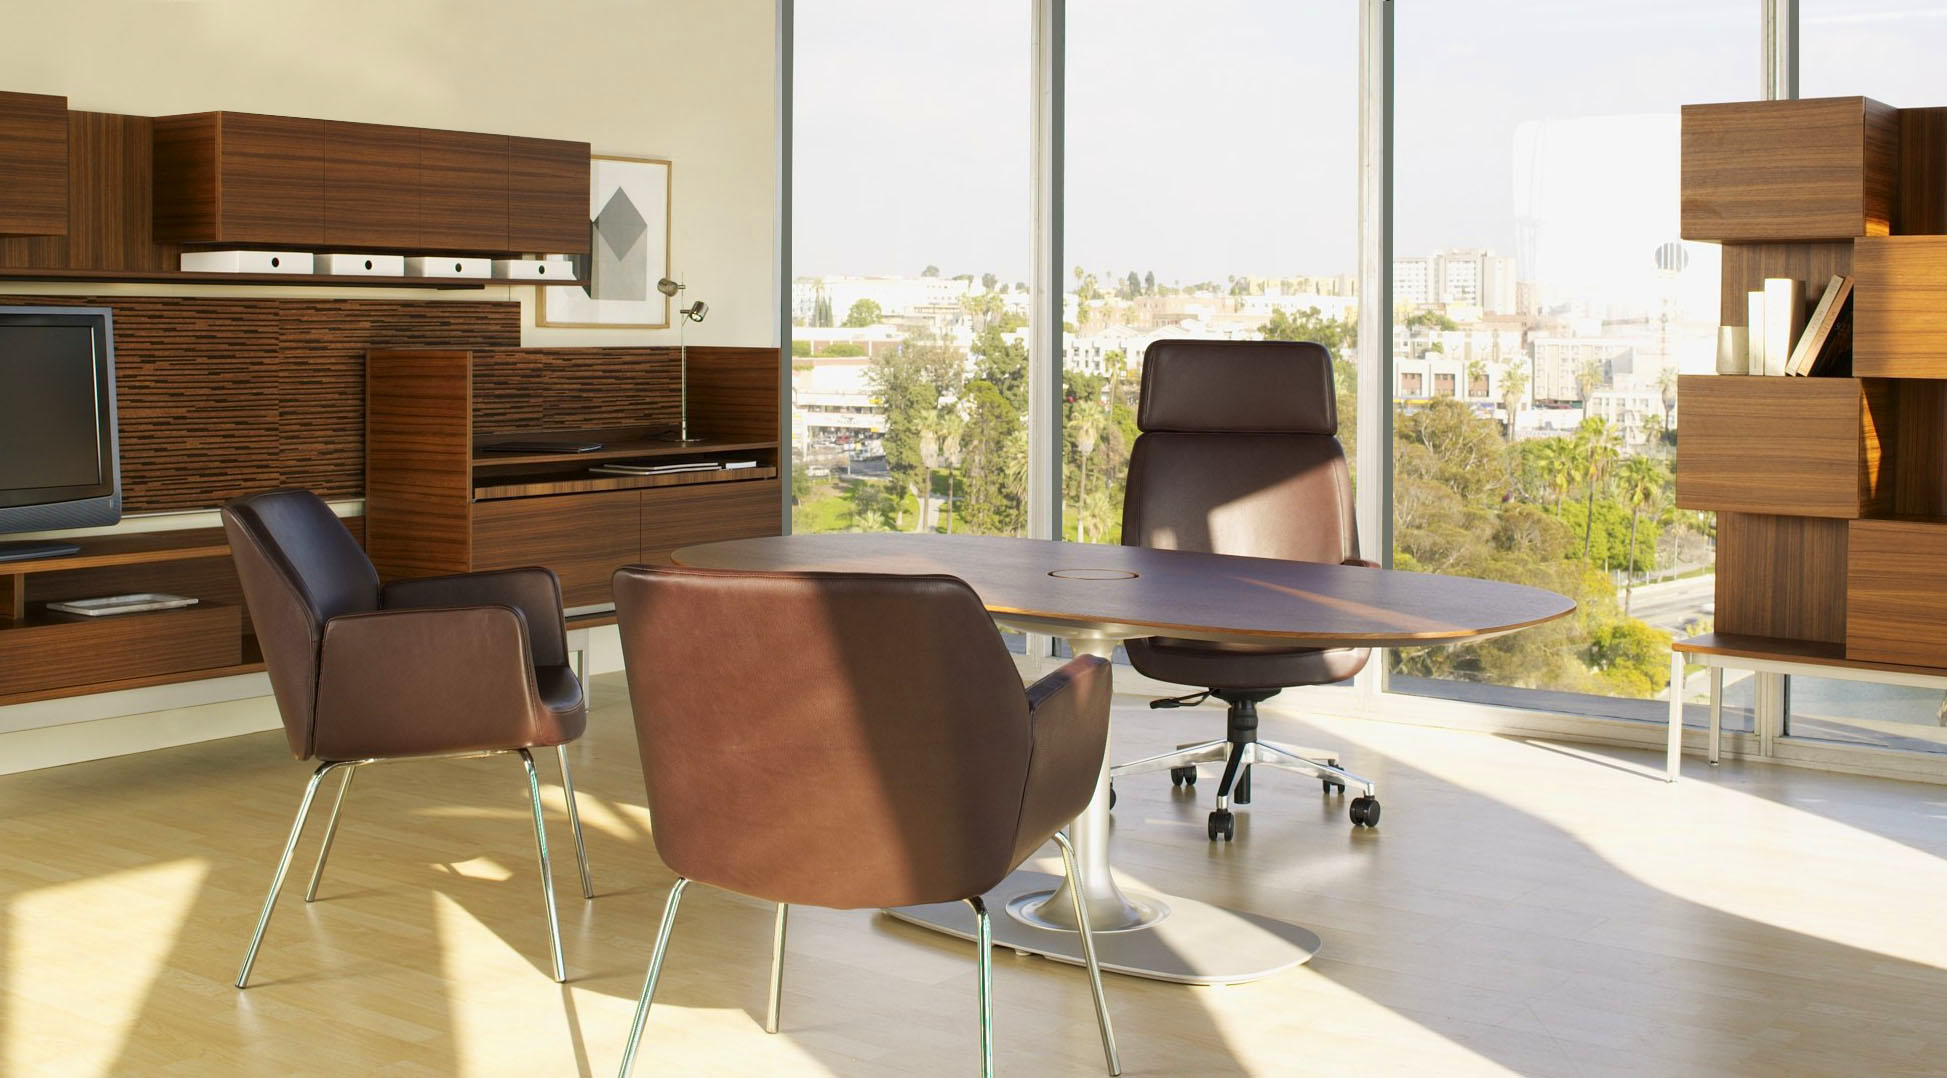 Bindu Executive Chair with Bindu Side Chairs and with Denizen Table, Desking and Storage